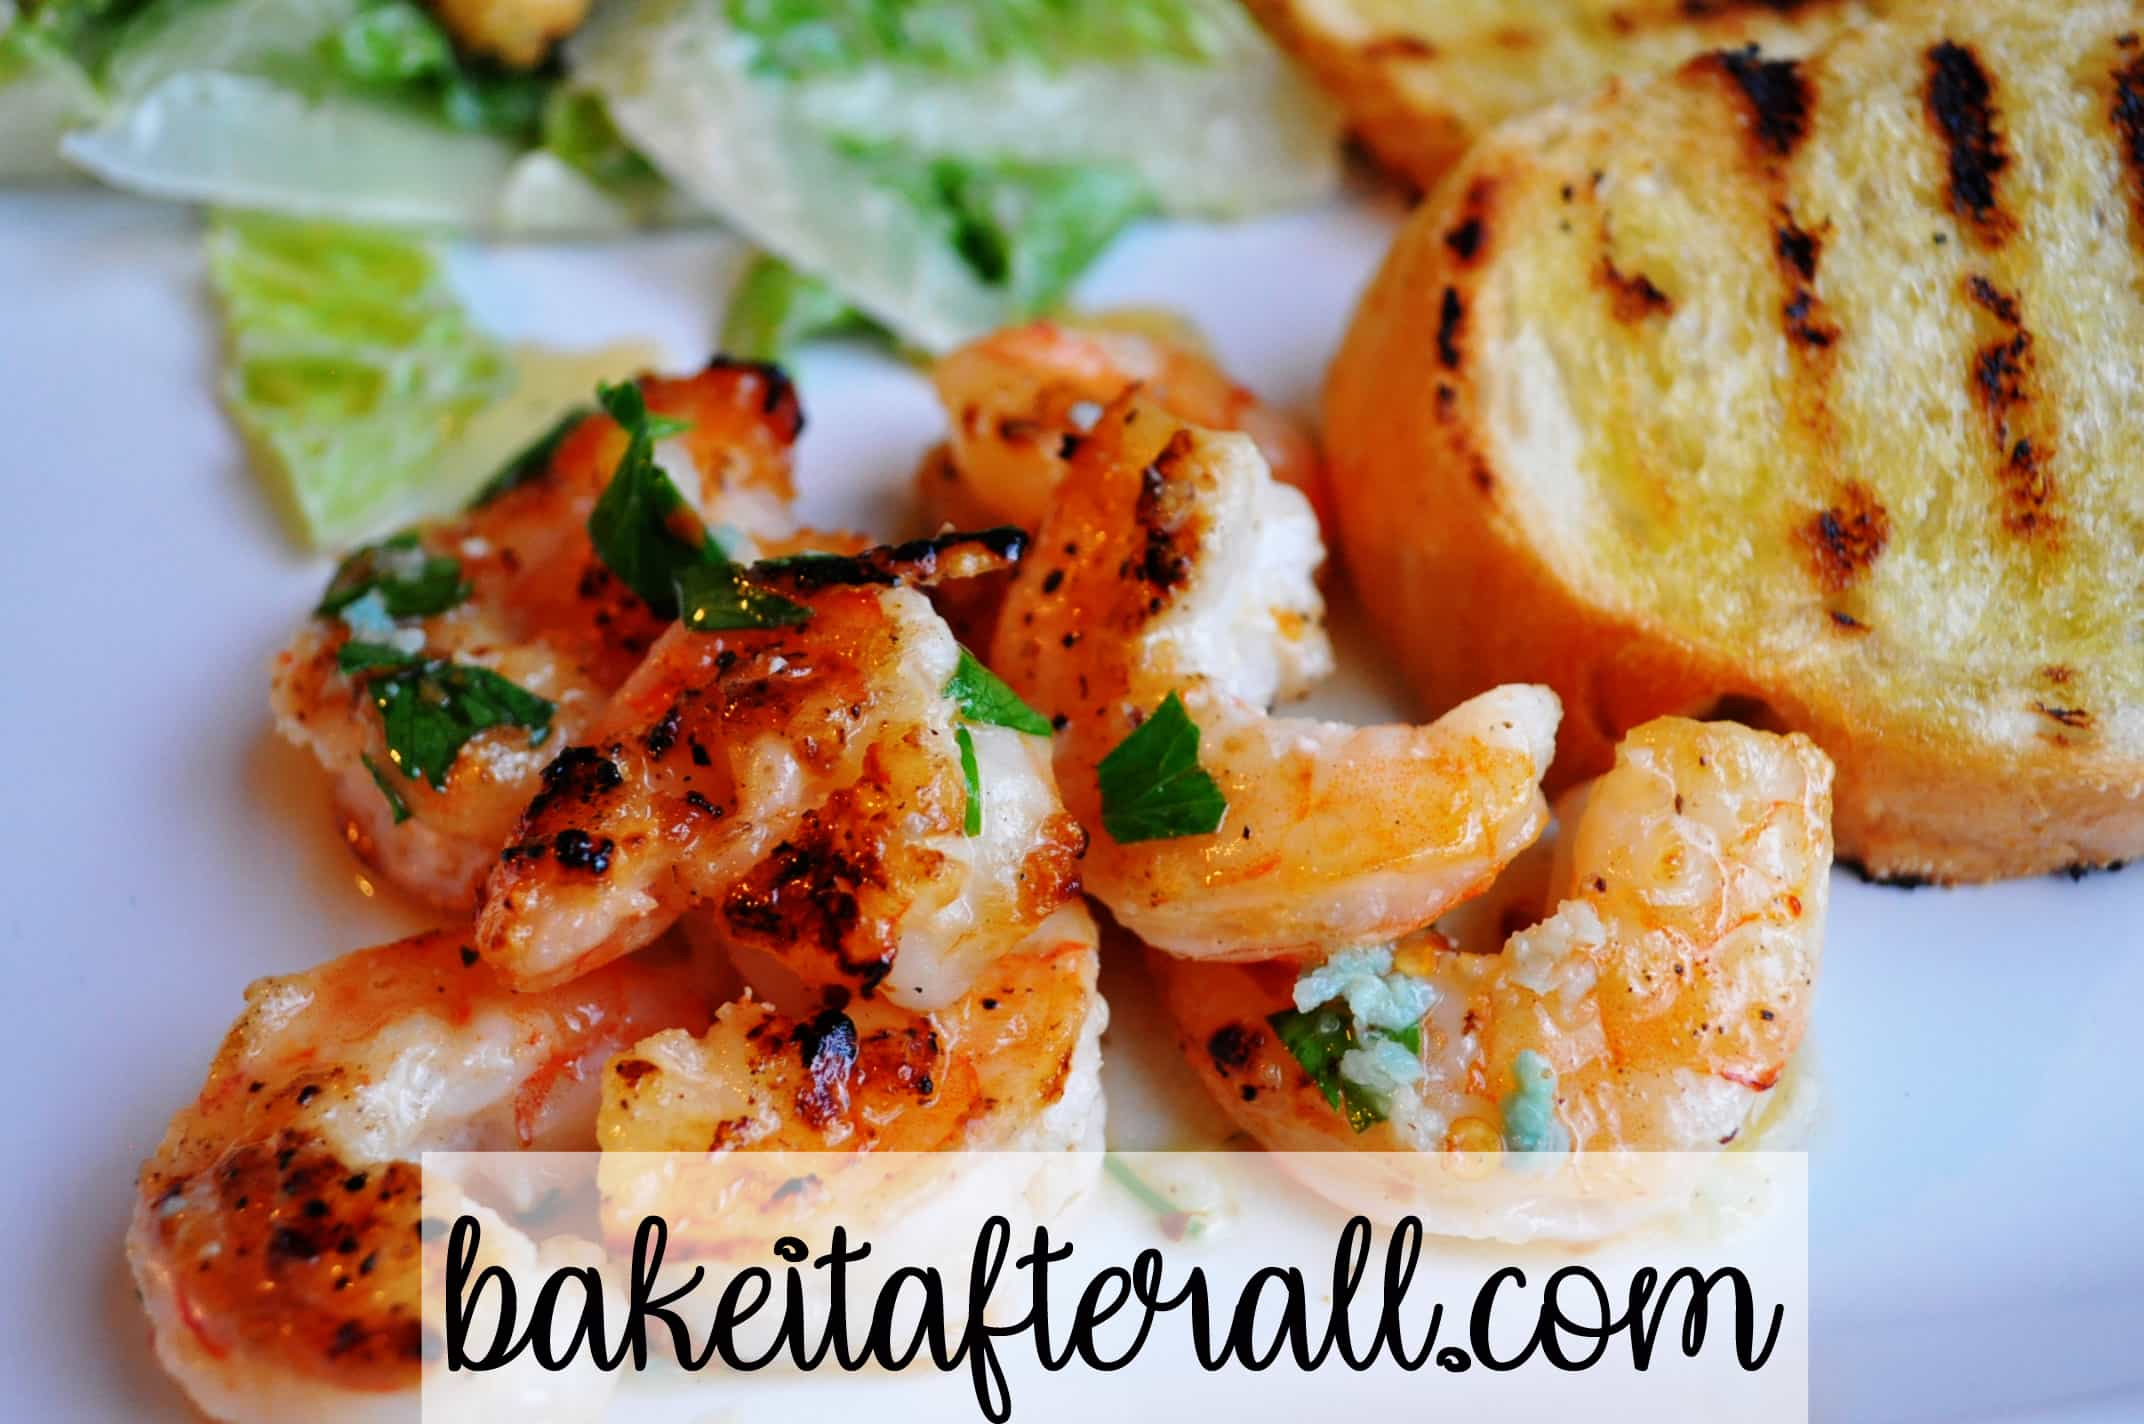 grilled shrimp spicy lemon garlic sauce